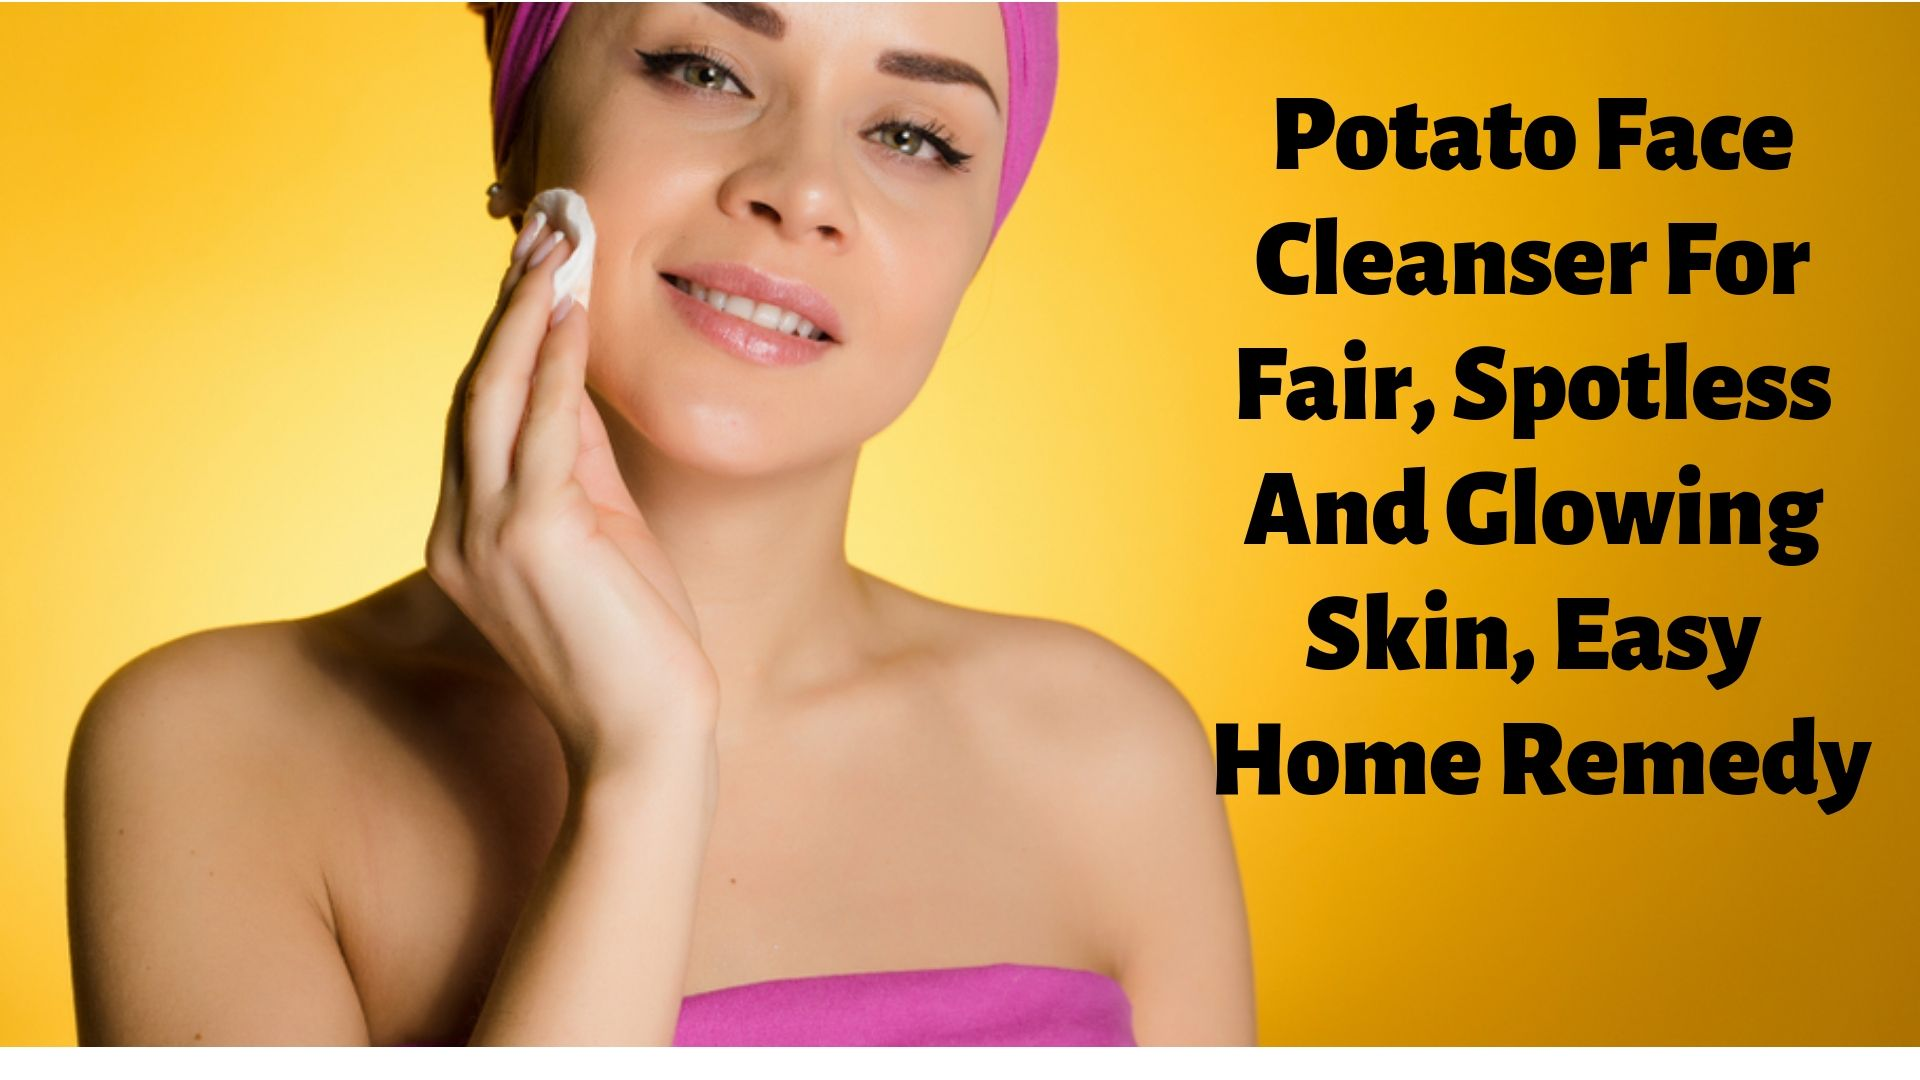 Potato Face Cleanser For Fair, Spotless And Glowing Skin, Easy